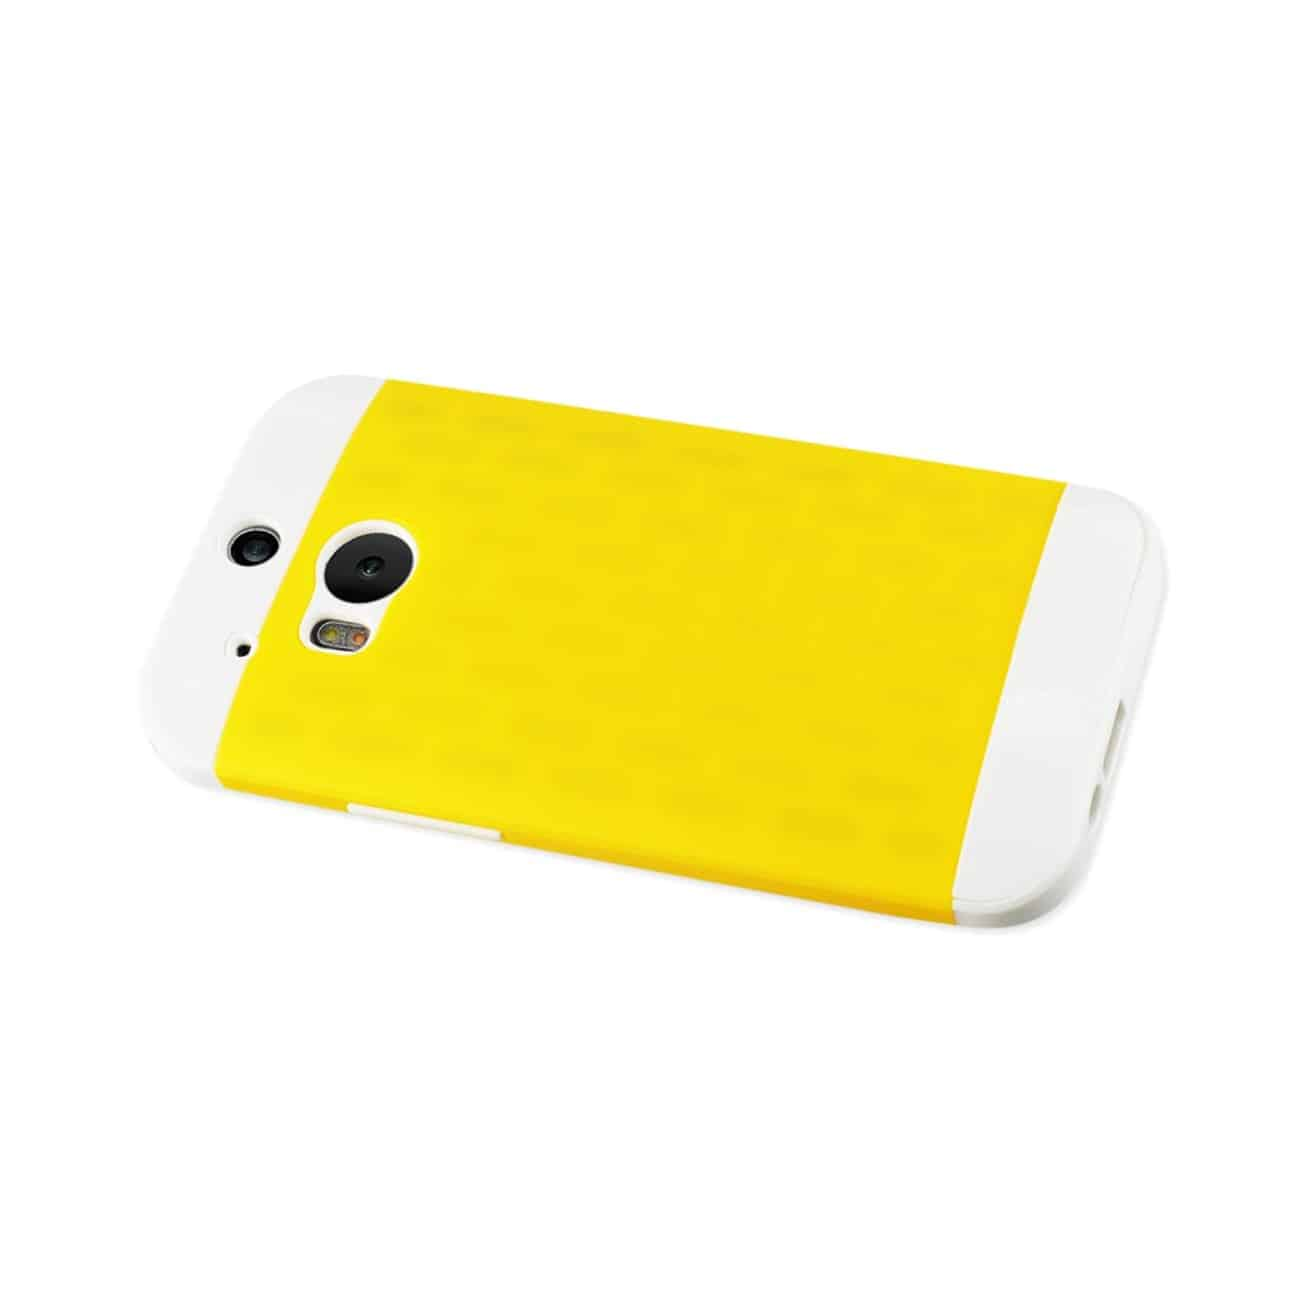 HTC ONE M8 HYBRID CASE WITH CARD HOLDER IN WHITE YELLOW